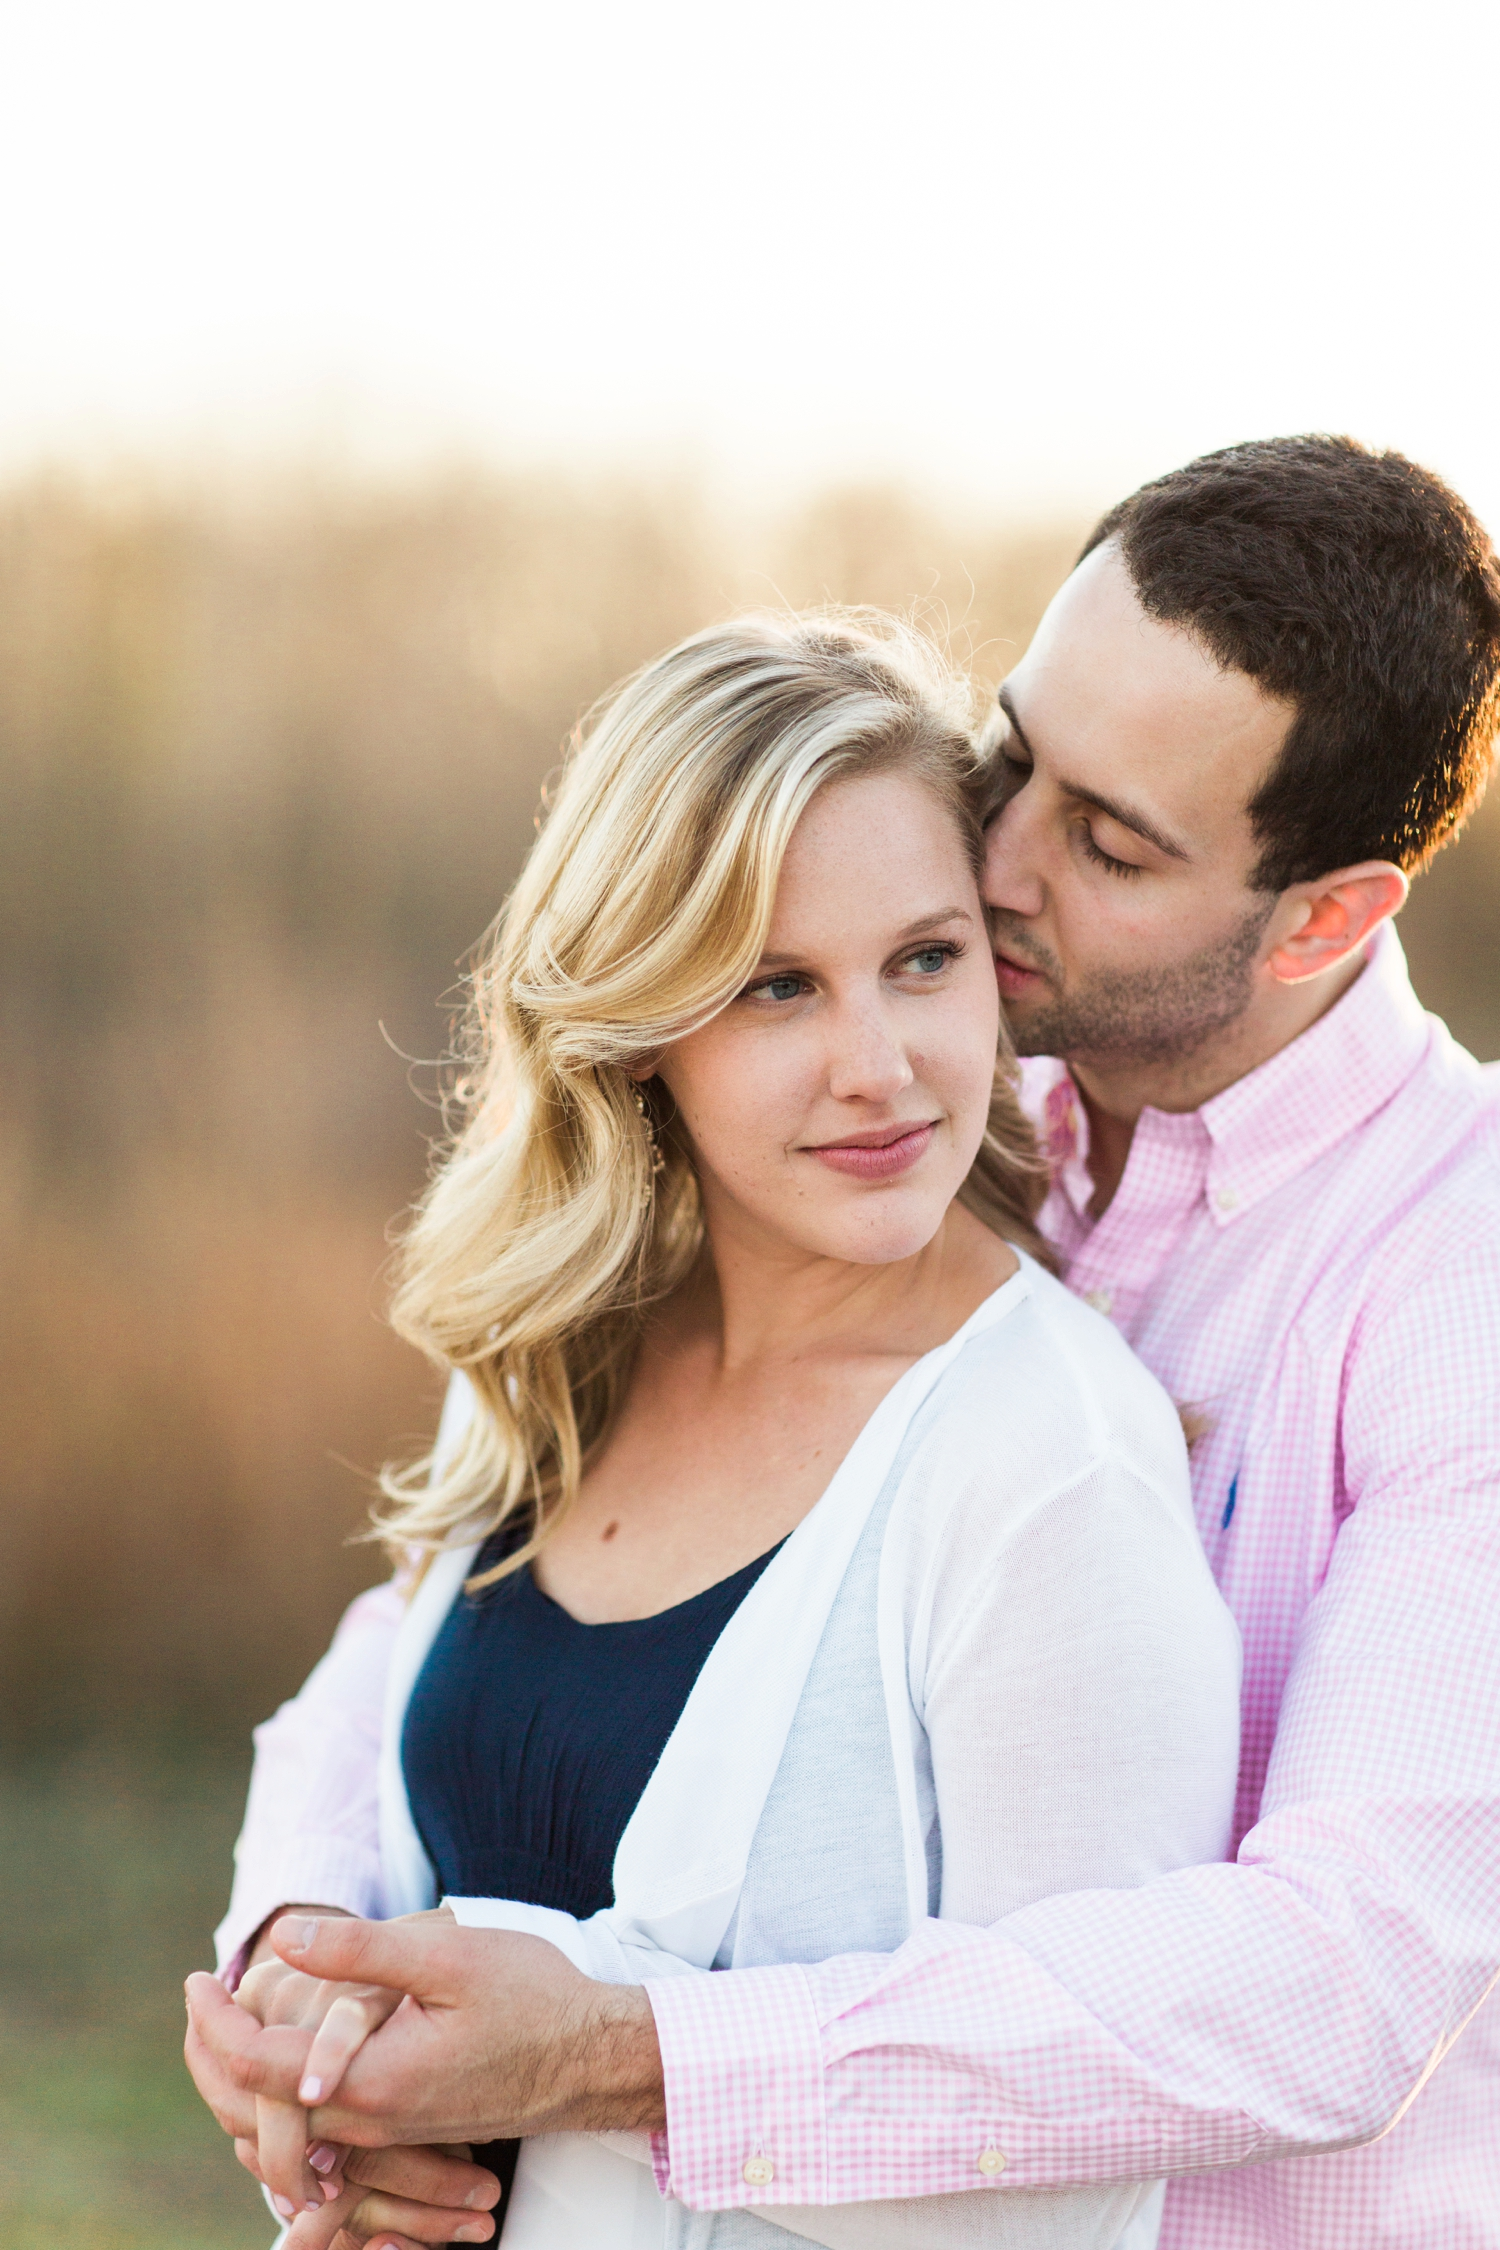 indianapolis_wedding_photographer_golden_hour_engagement_chloe_luka_photography_6140.jpg